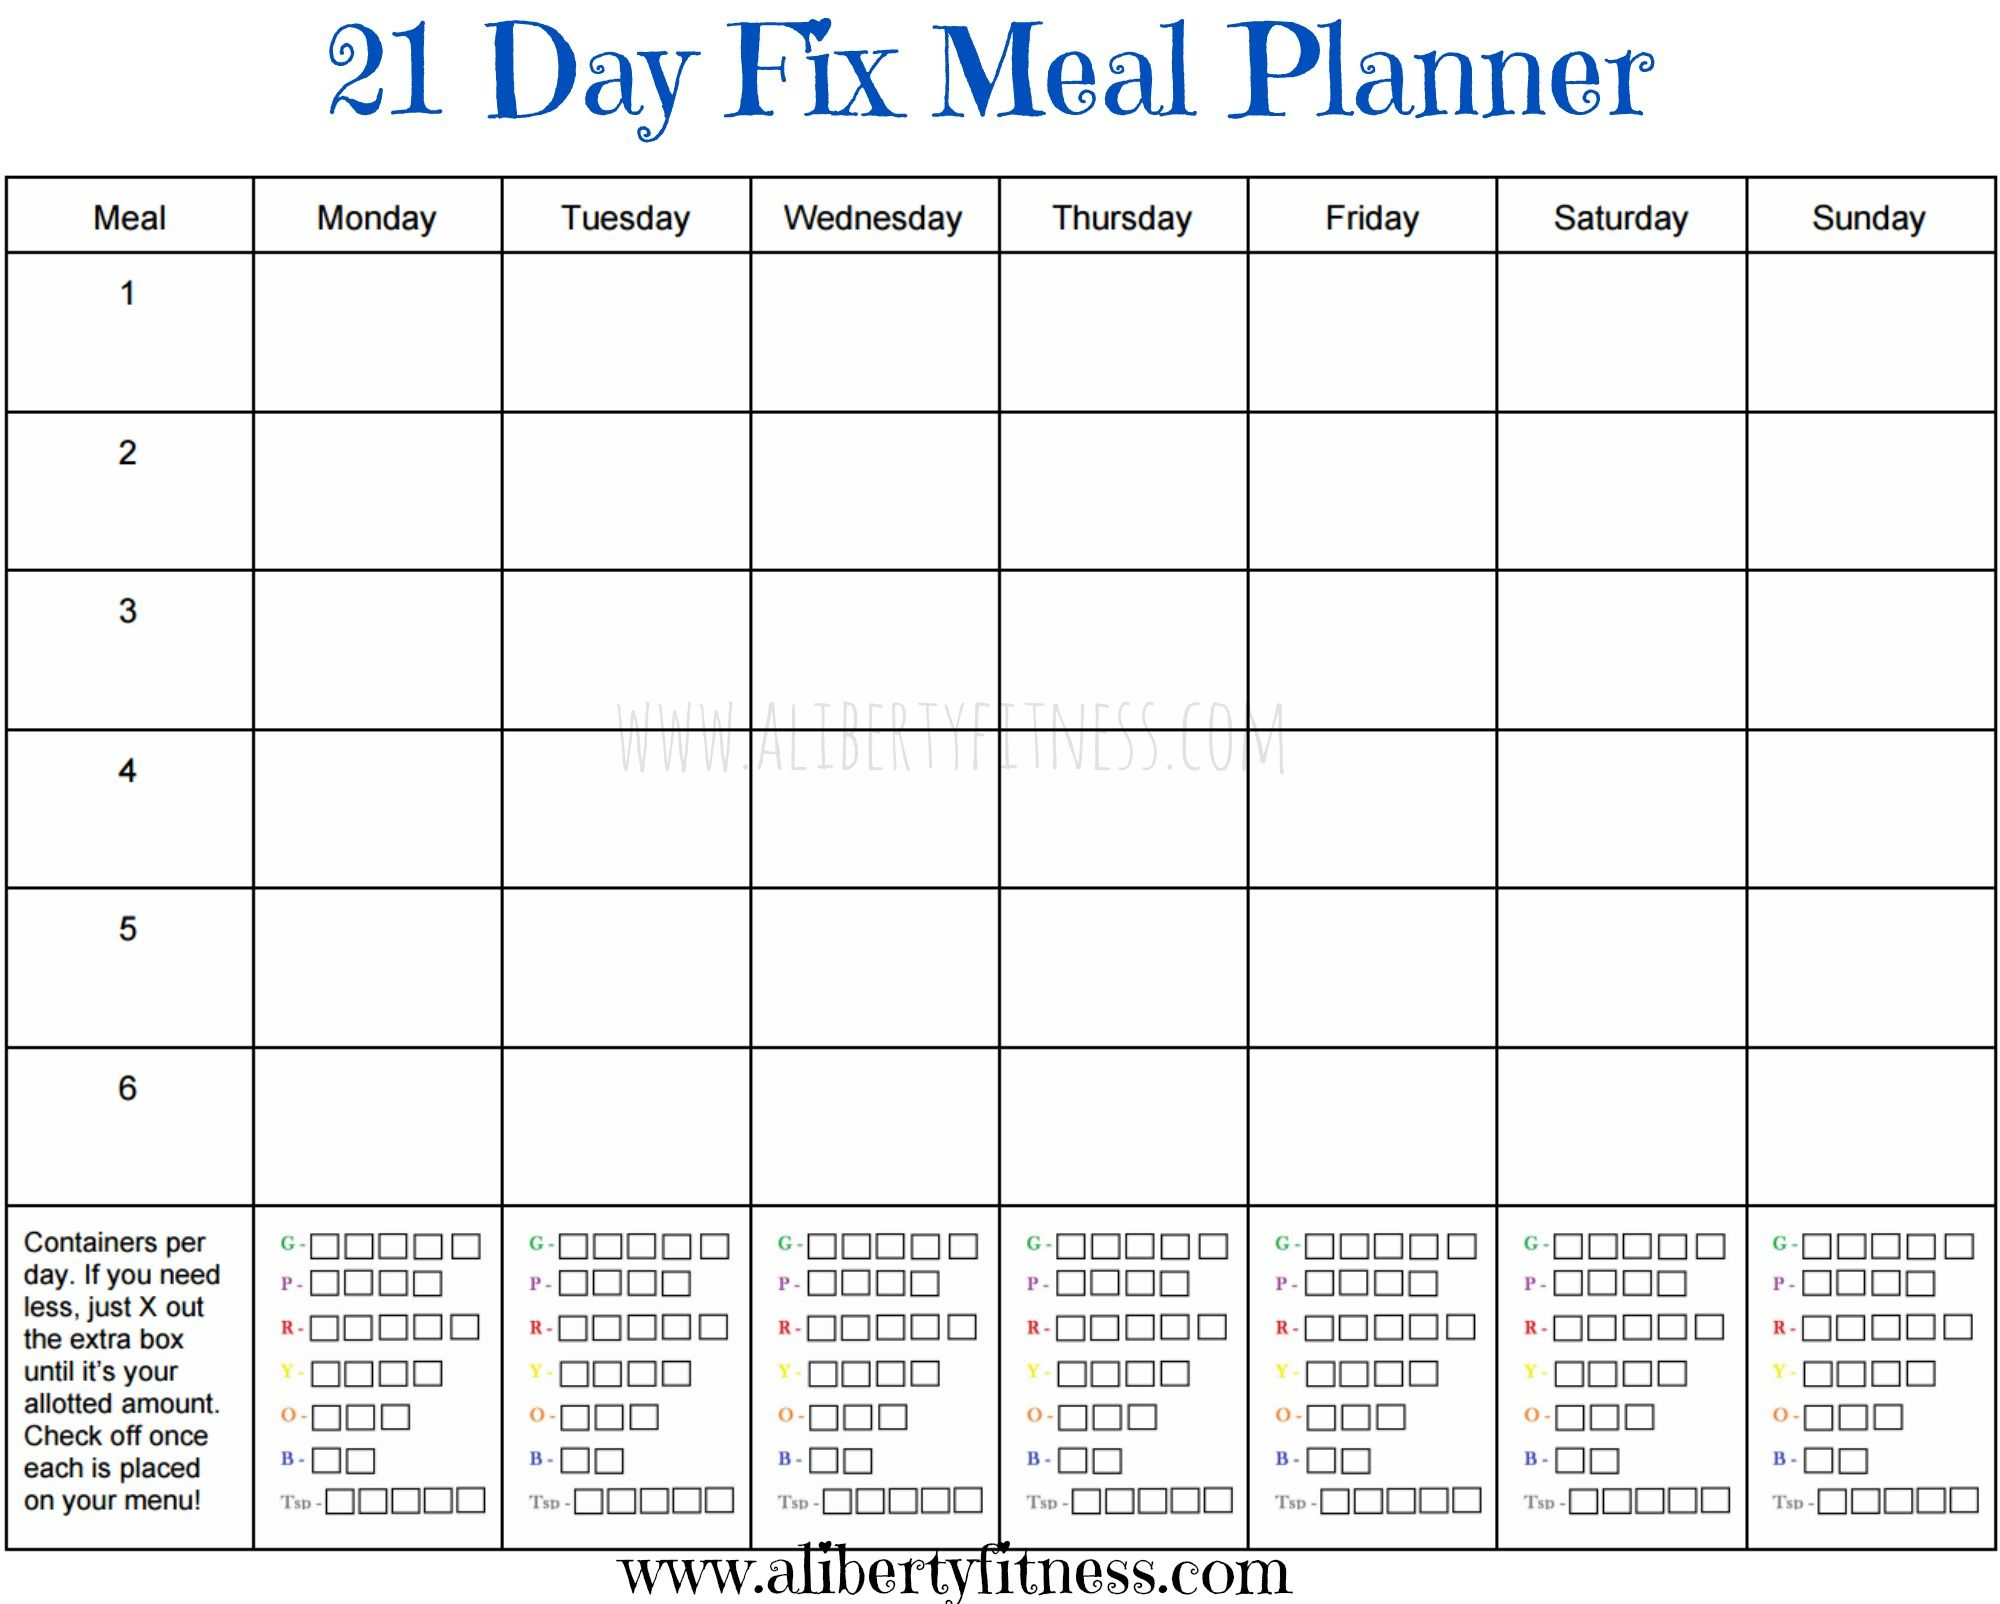 photograph relating to 21 Day Fix Printable Meal Planner named Pin upon Balanced Foods